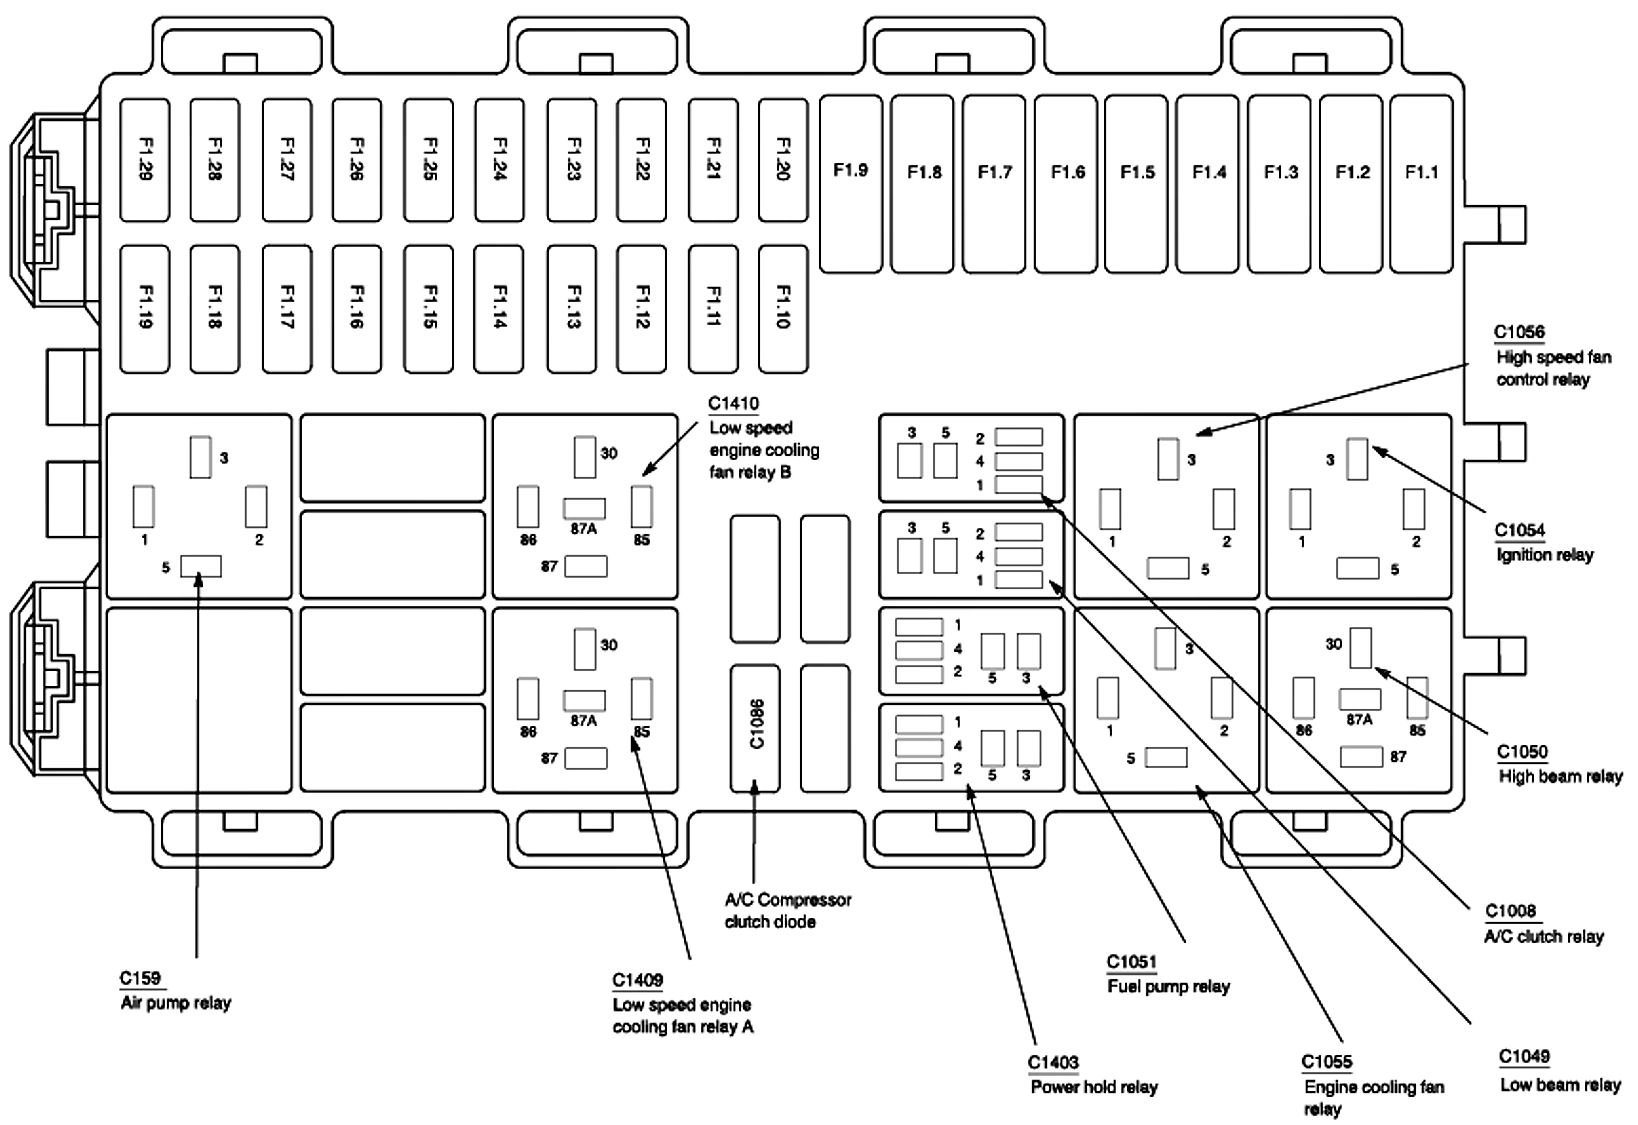 2013 Ford Focus Fuse Box Diagram : Diagram E46 320d Fuse